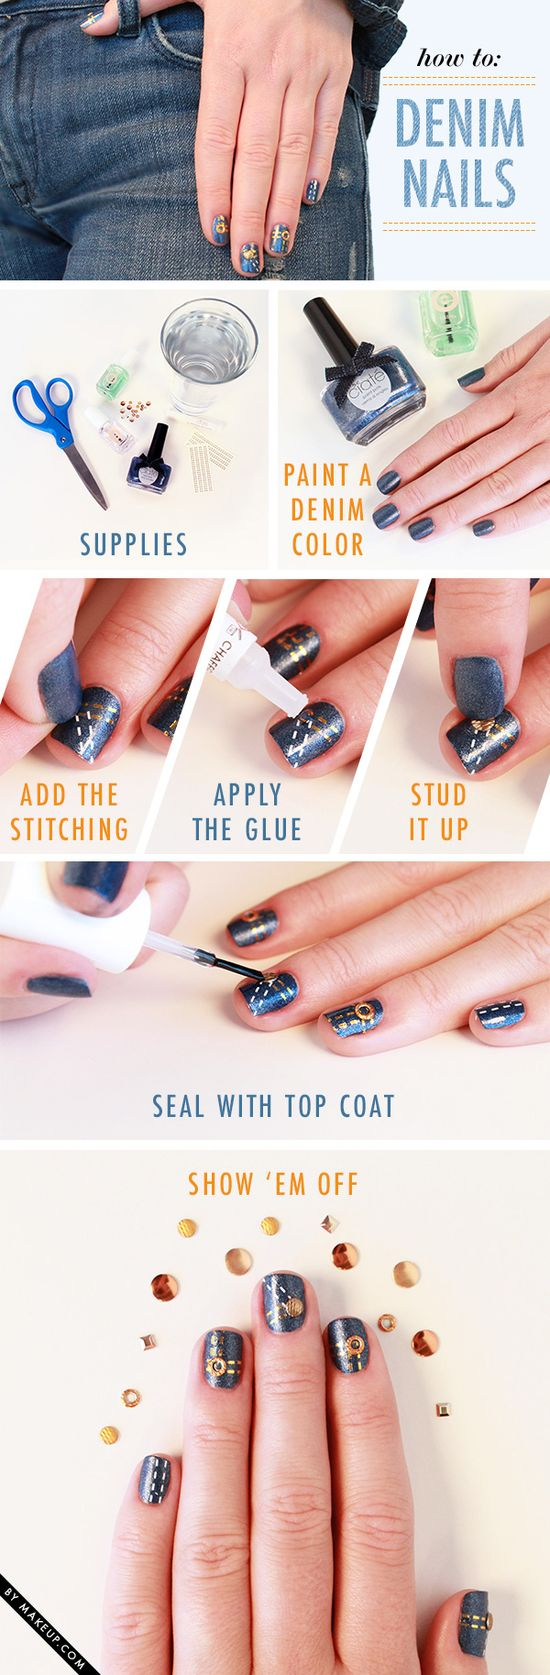 how to: denim inspired manicure // love this creative nail art!